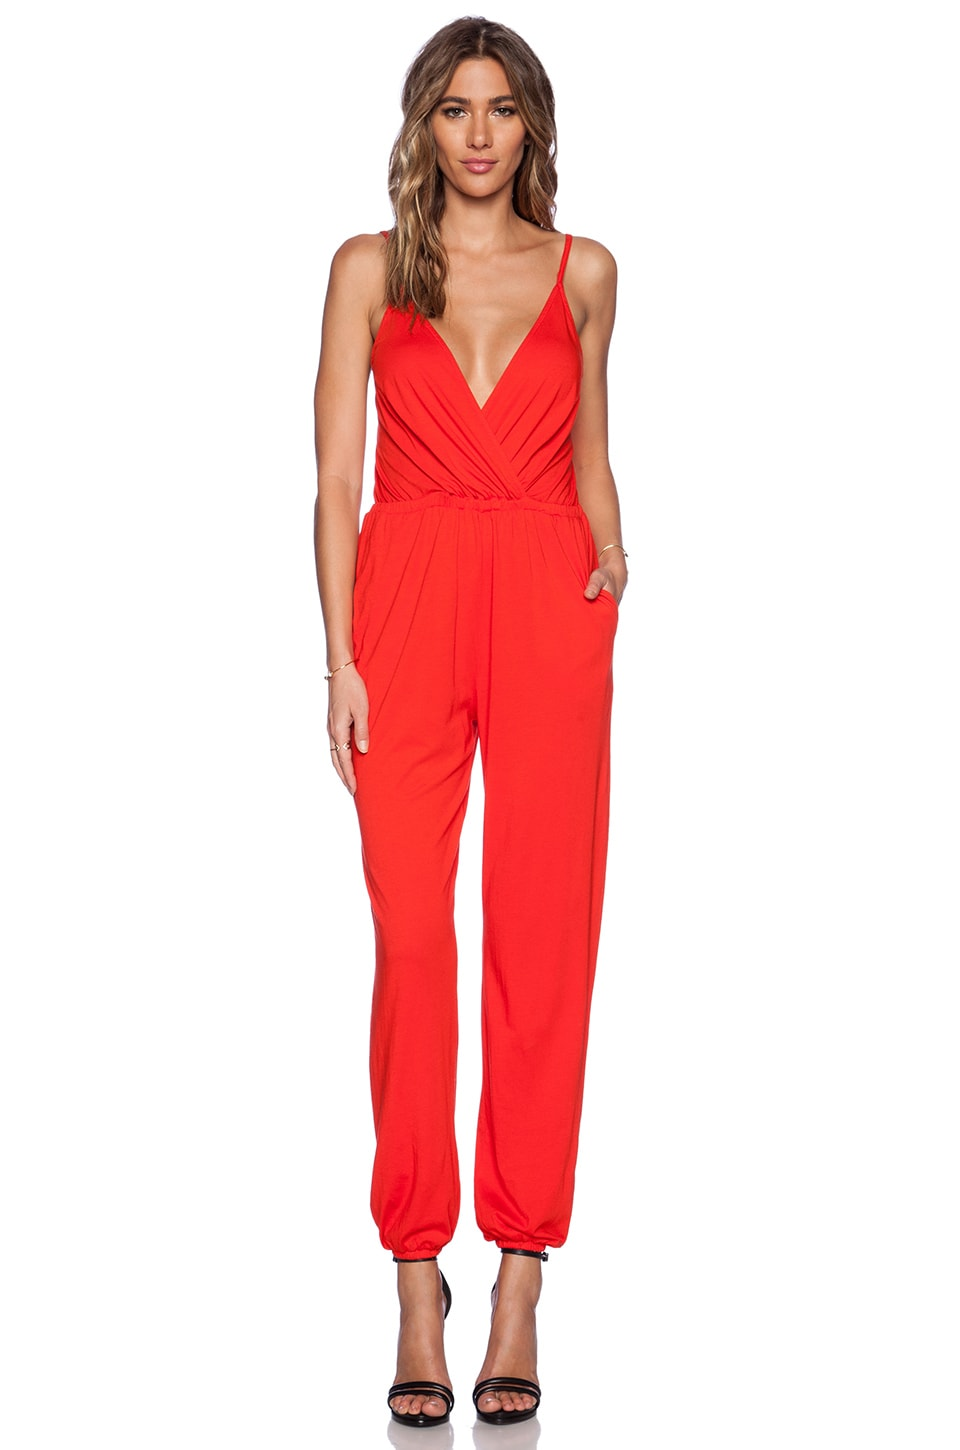 Bobi Modal Jersey Drape Front Jumpsuit in Candy Red